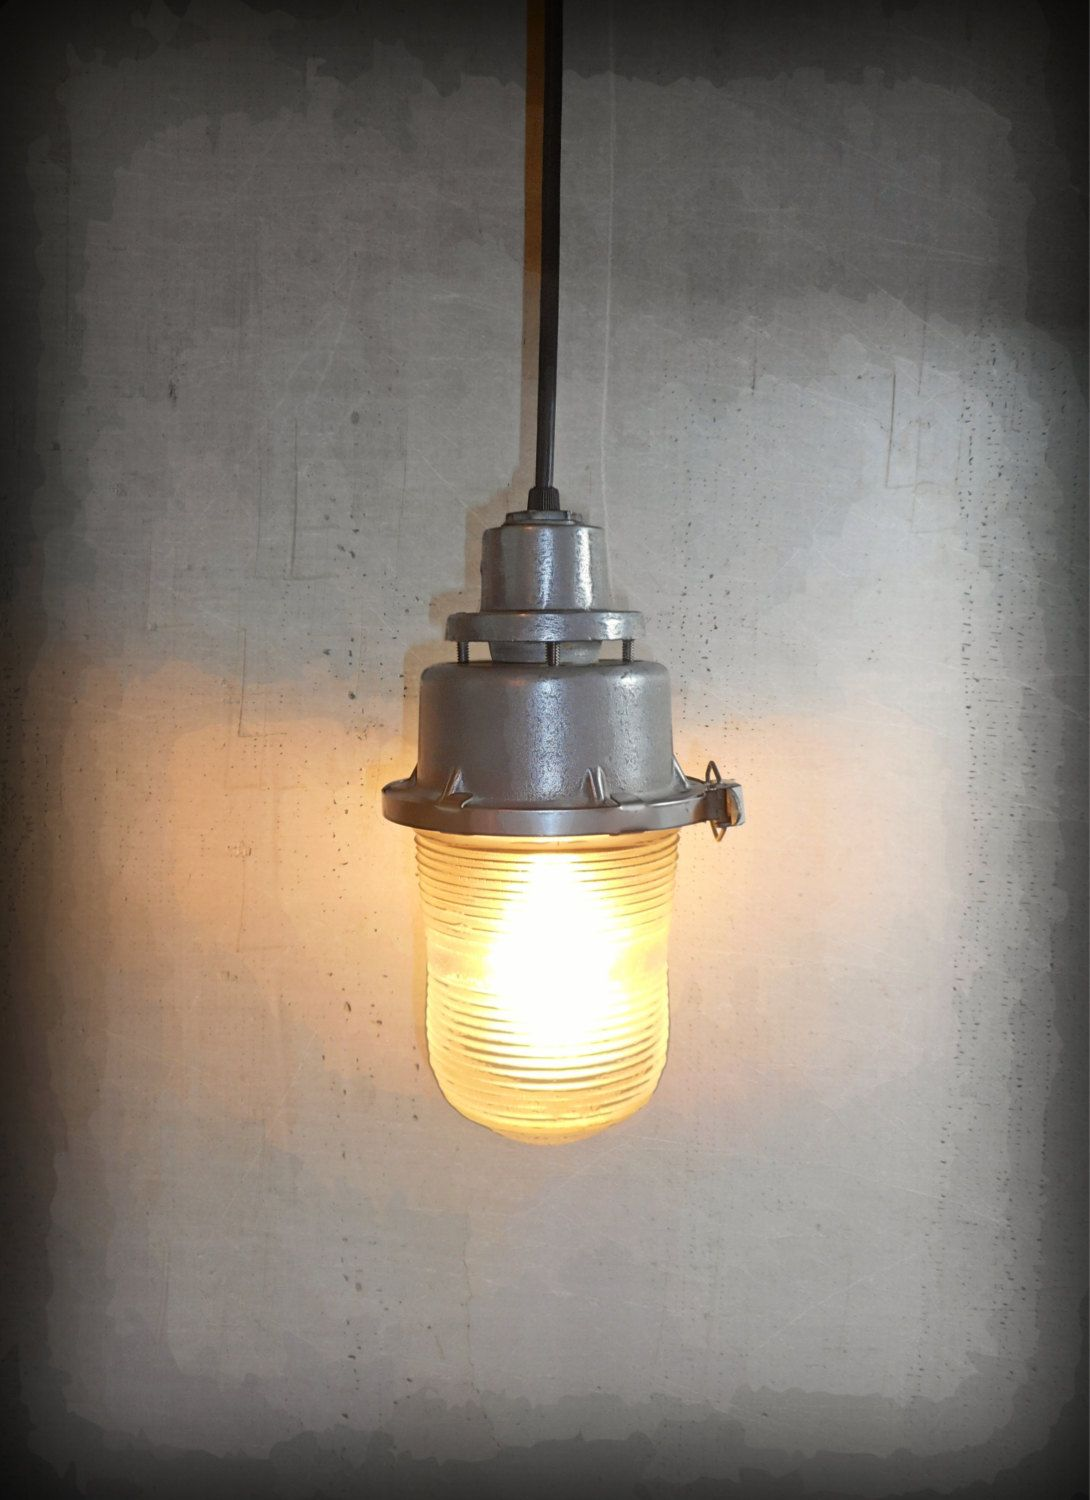 Found Object Industrial Light Pendant   Post Apocalyptic Obstruction Metal  Lamp   The Pendulum ©